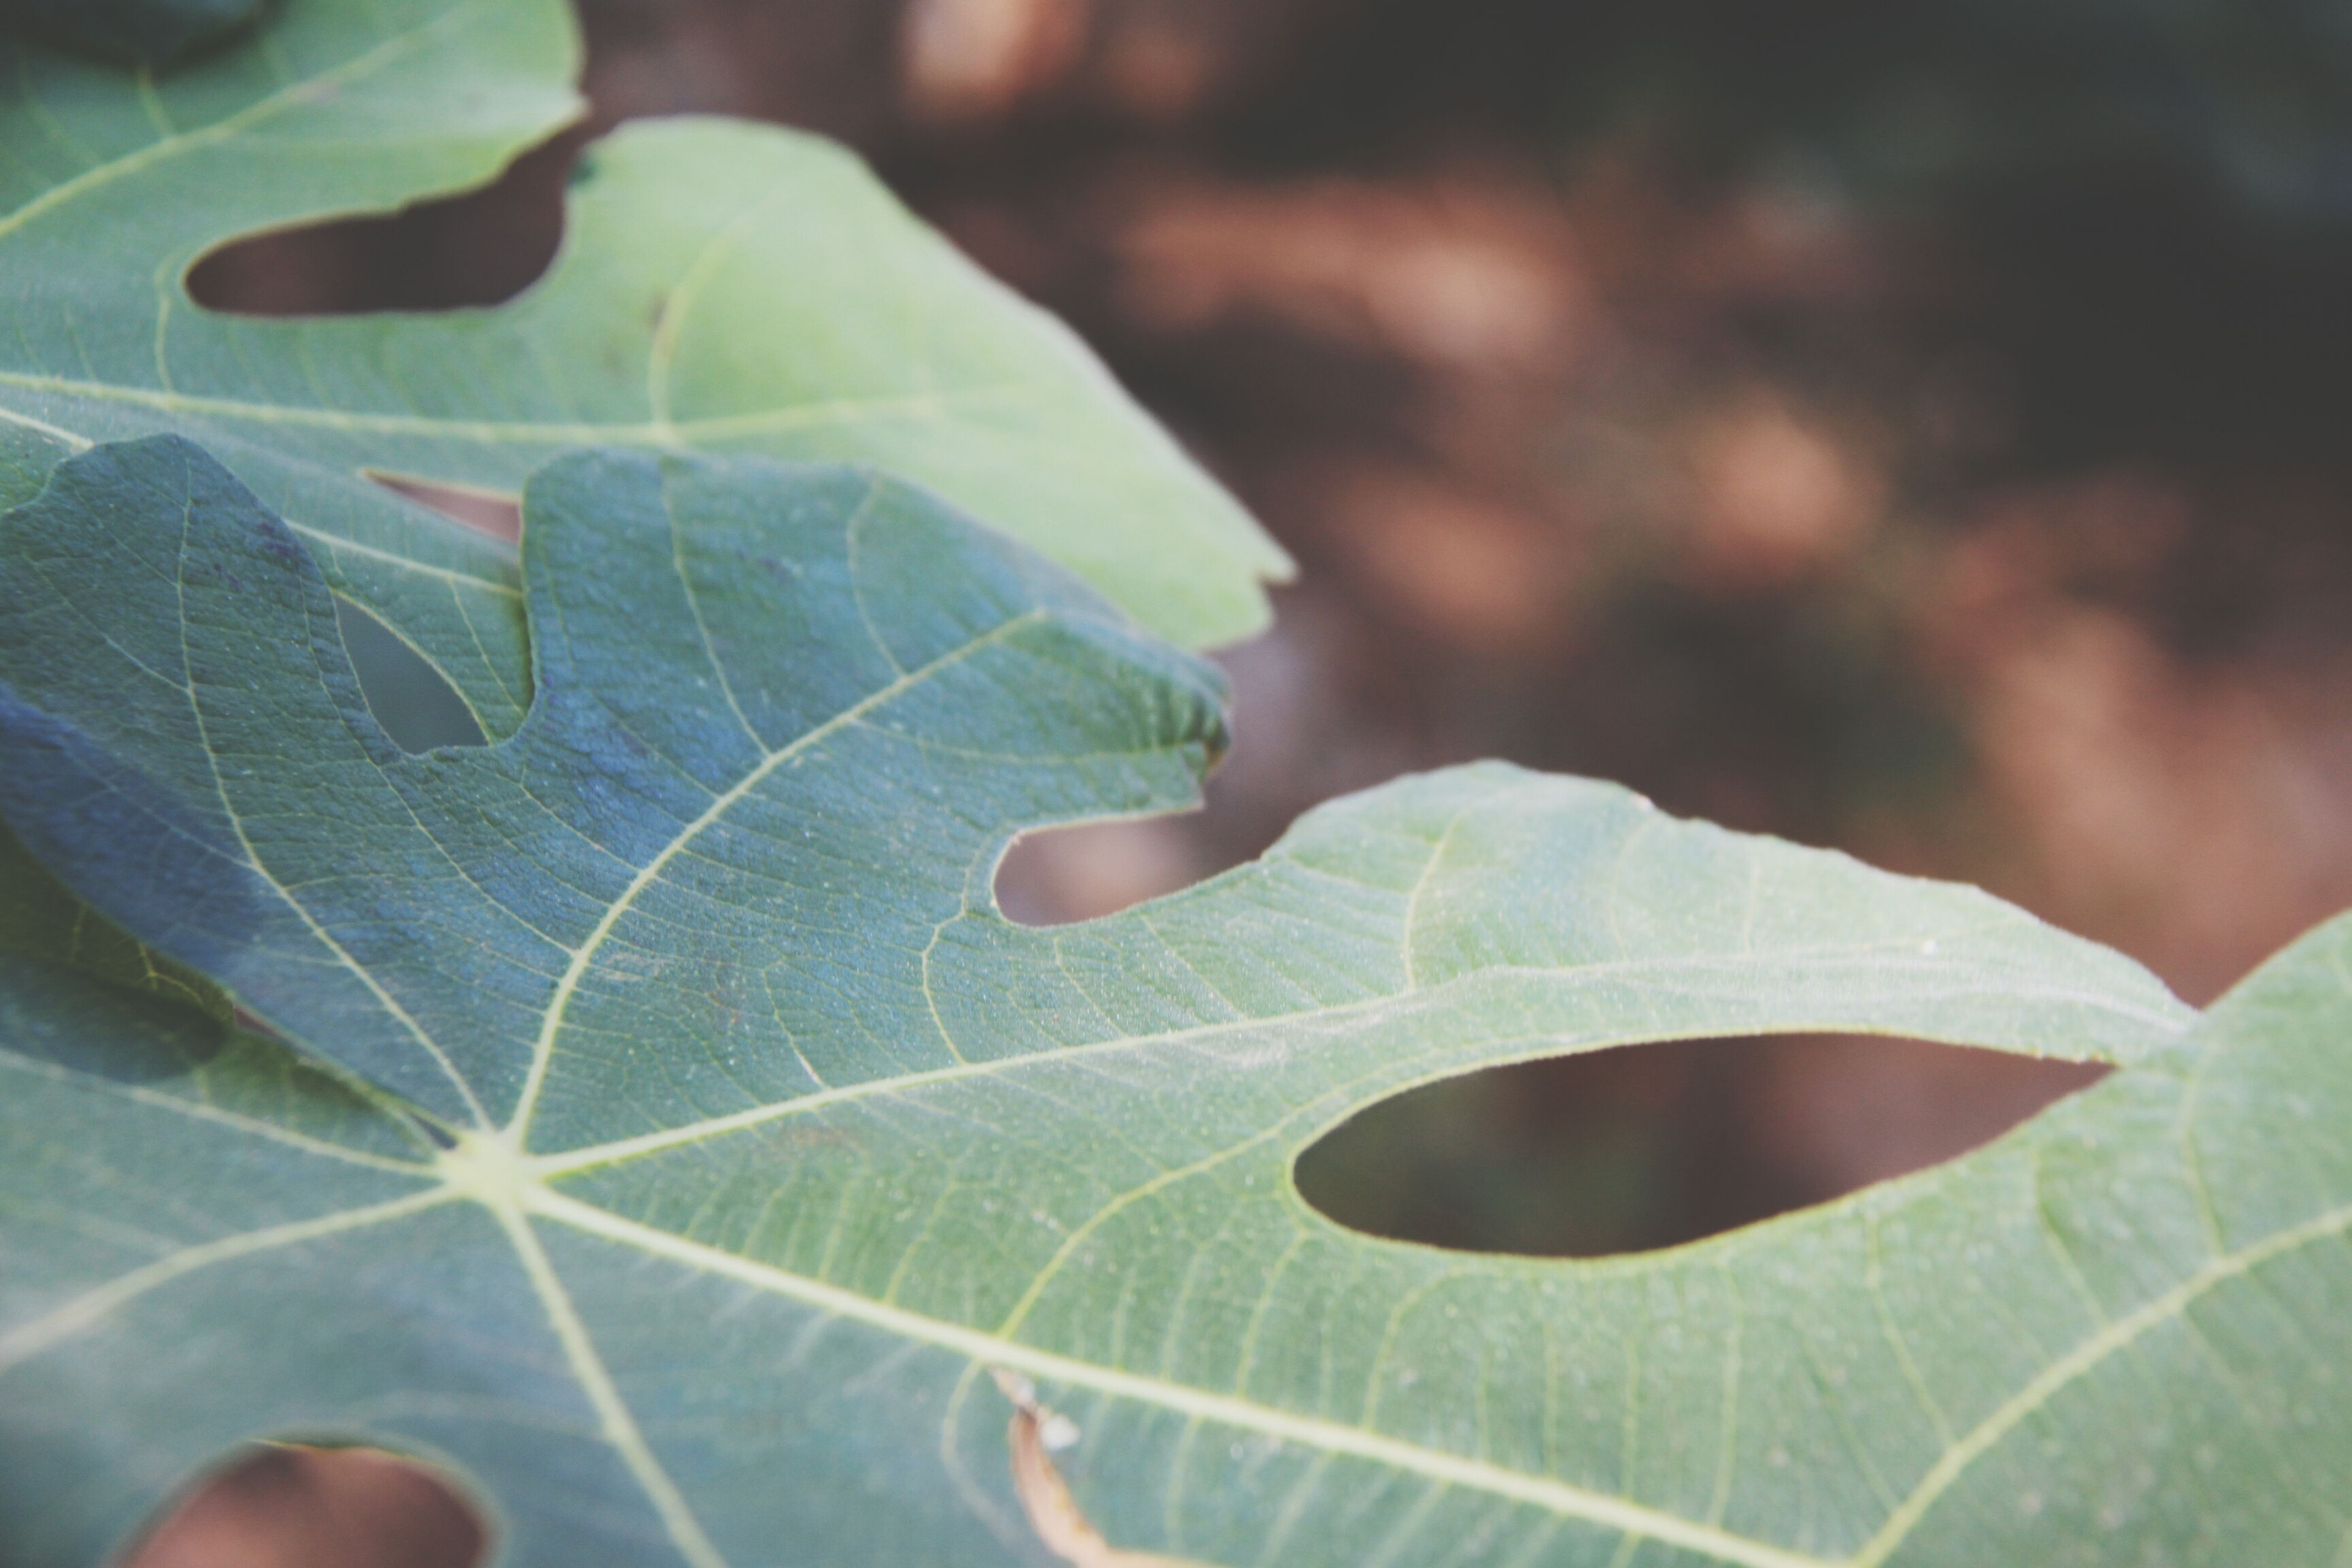 leaf, leaf vein, green color, close-up, person, focus on foreground, part of, natural pattern, unrecognizable person, leaves, plant, nature, cropped, holding, growth, day, selective focus